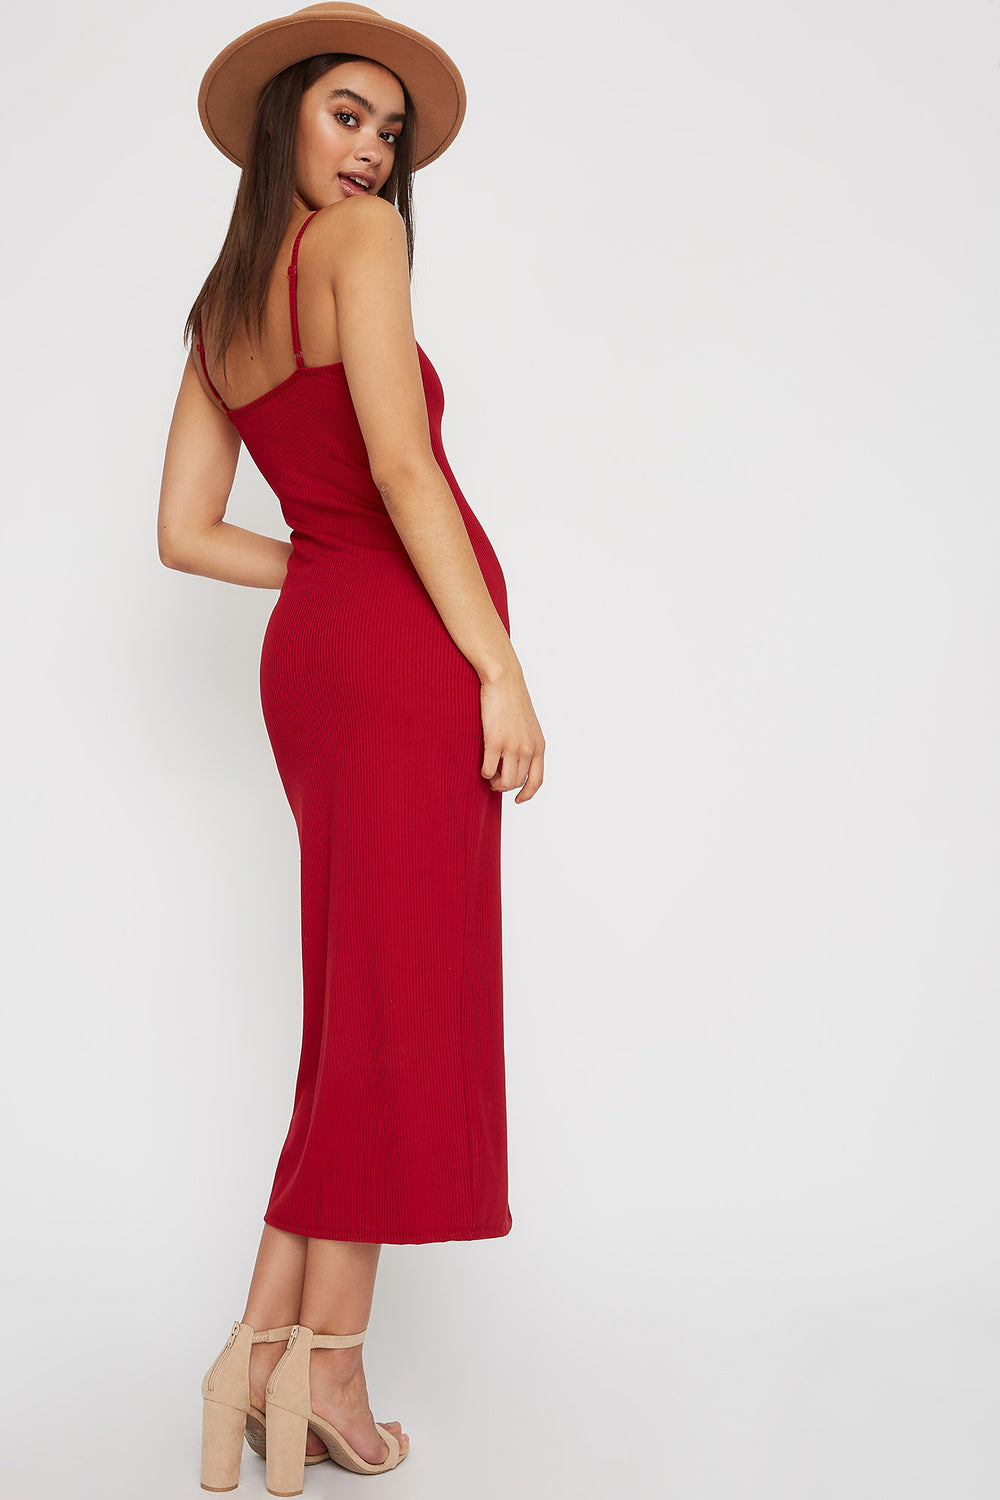 Ribbed Button Cut Out Sleeveless Midi Dress Dark Red